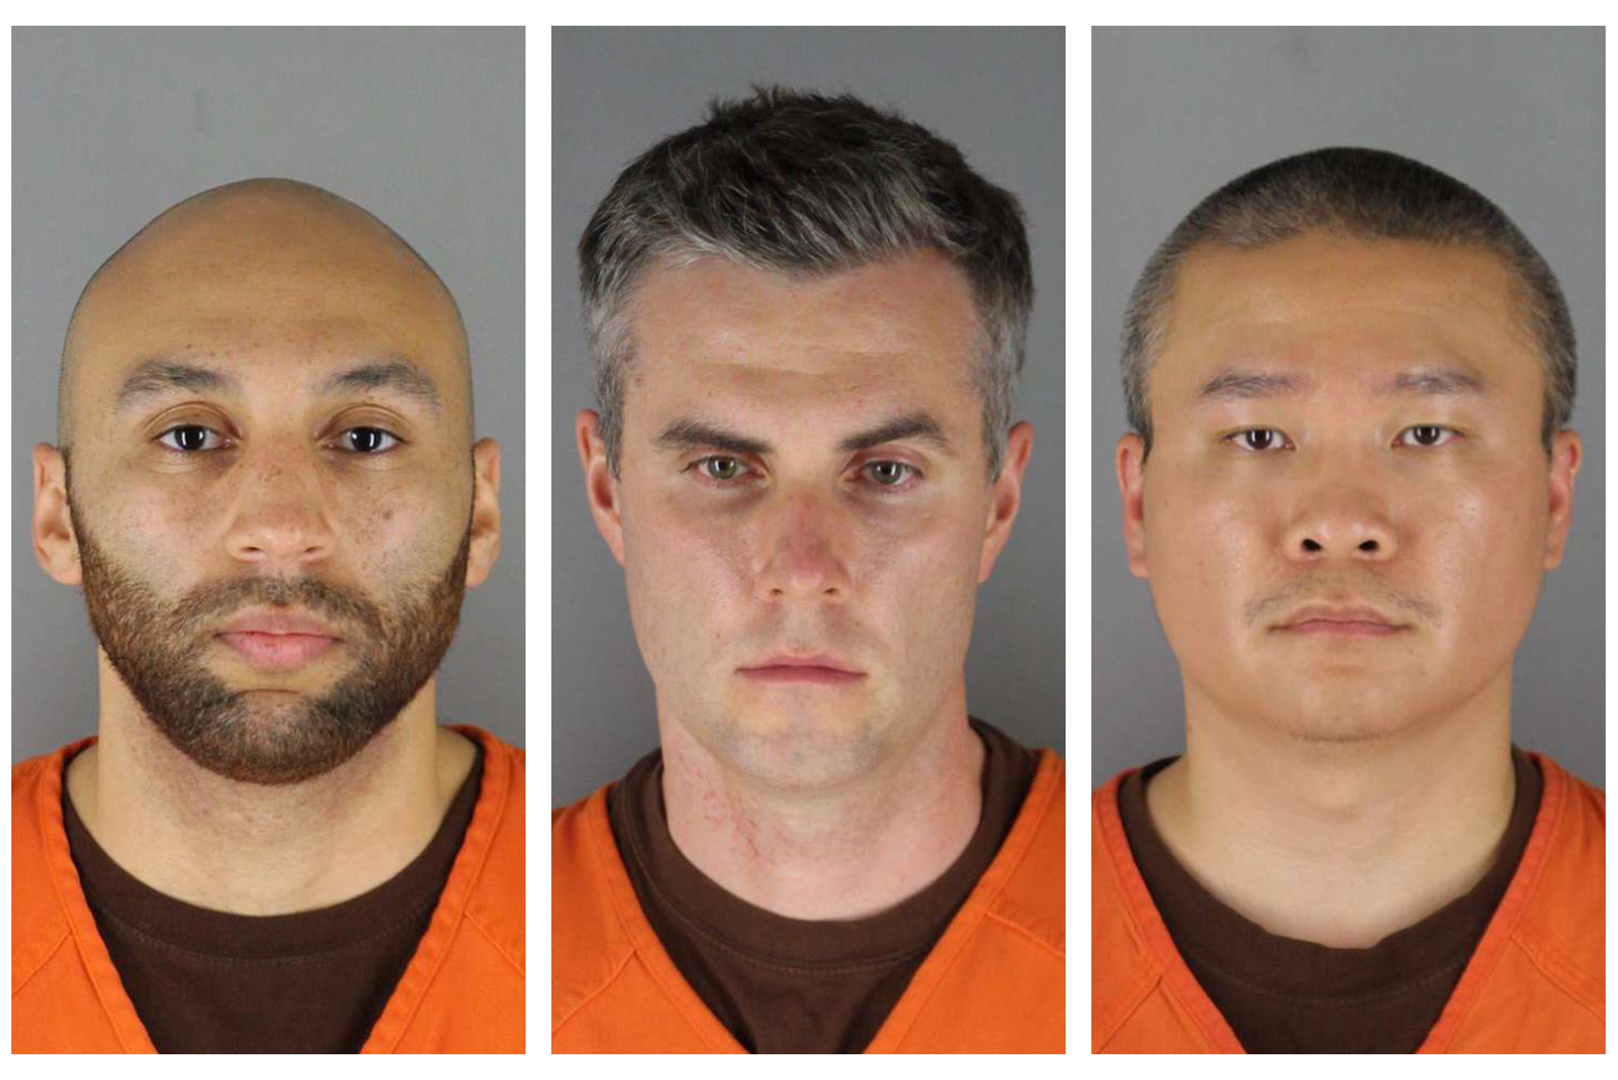 This combination of photos provided by the Hennepin County Sheriff's Office in Minnesota on June 3, 2020, shows ex-Minneapolis police officers from left, J. Alexander Kueng, Thomas Lane and Tou Thao. (Hennepin County Sheriff's Office via AP)